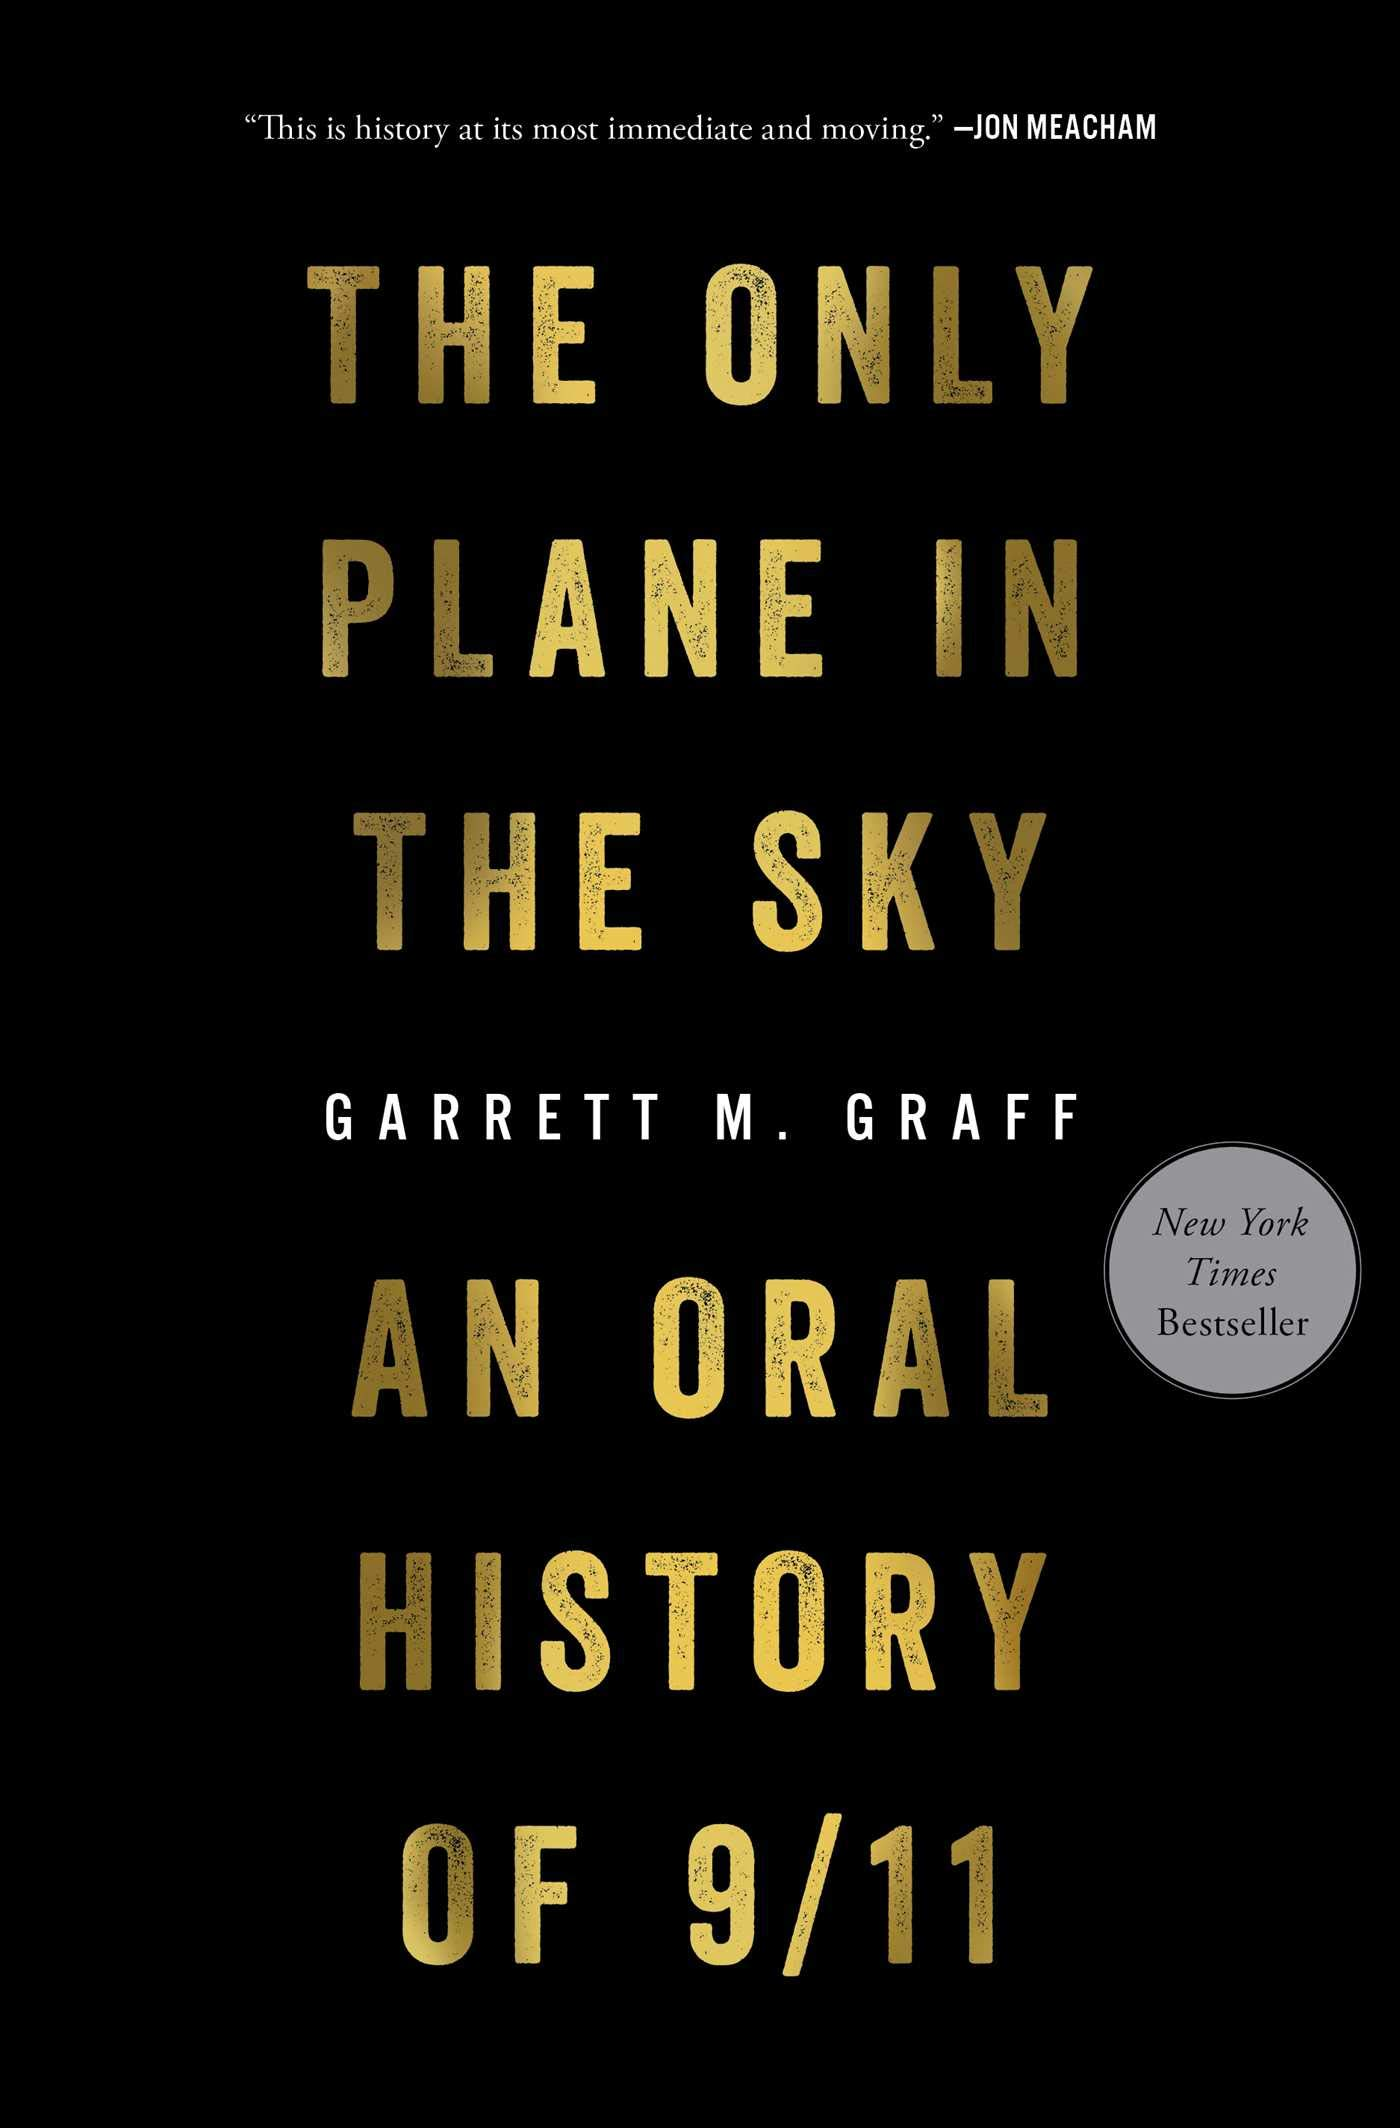 The Only Plane in the Sky: An Oral History of 9/11 by Avid Reader Press / Simon & Schuster